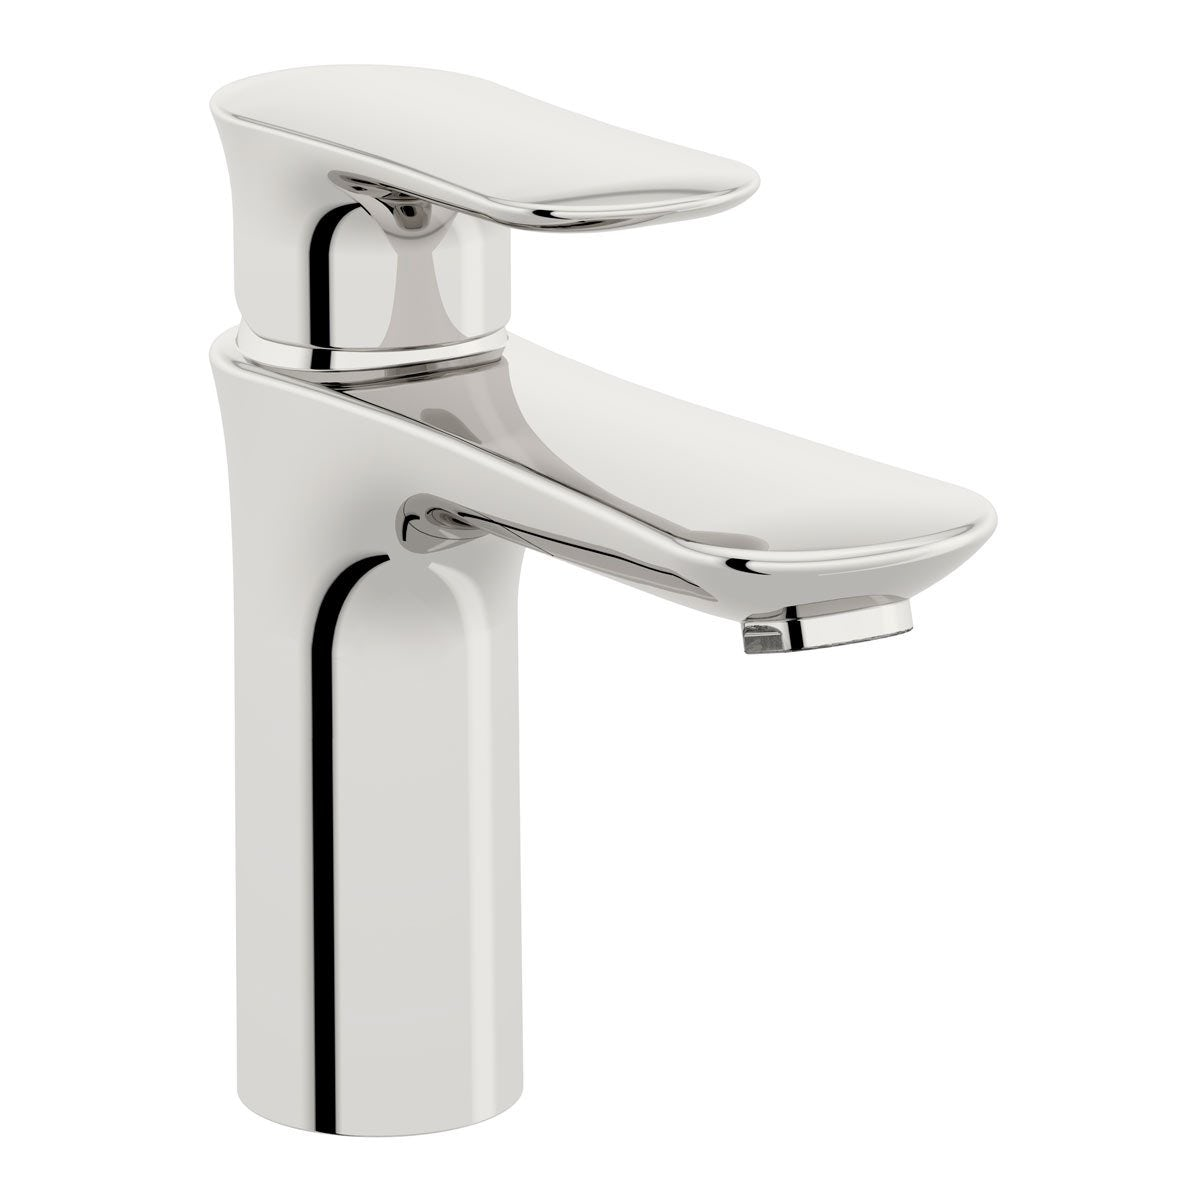 Orchard Cleanse basin mixer tap